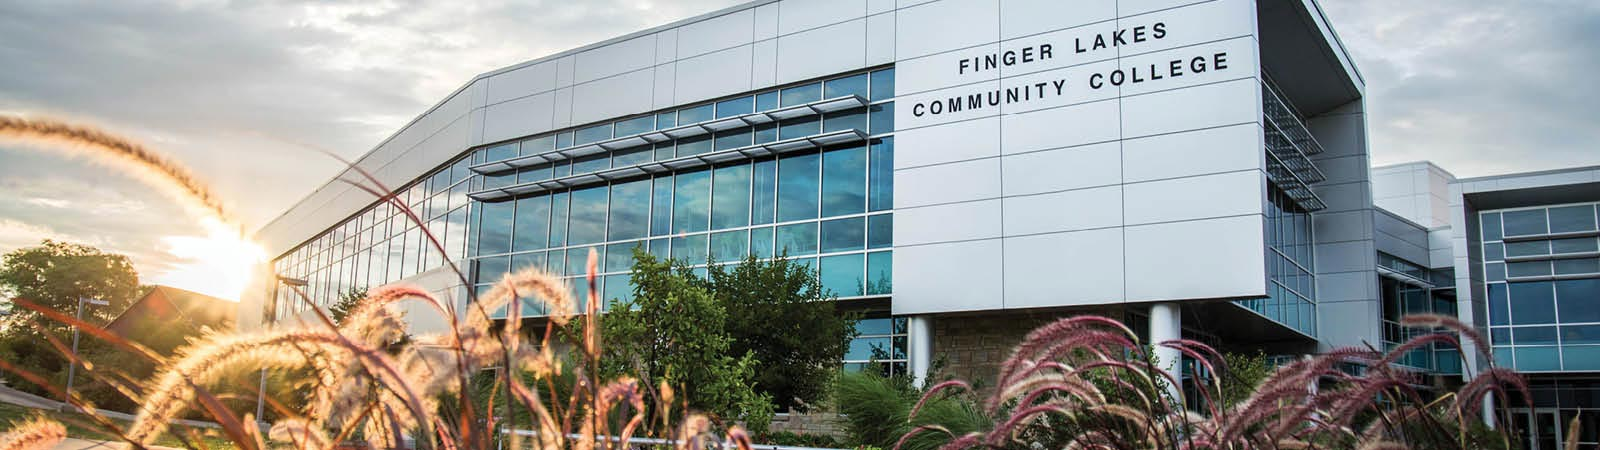 The Student Center at Finger Lakes Community College, Canandaigua, NY